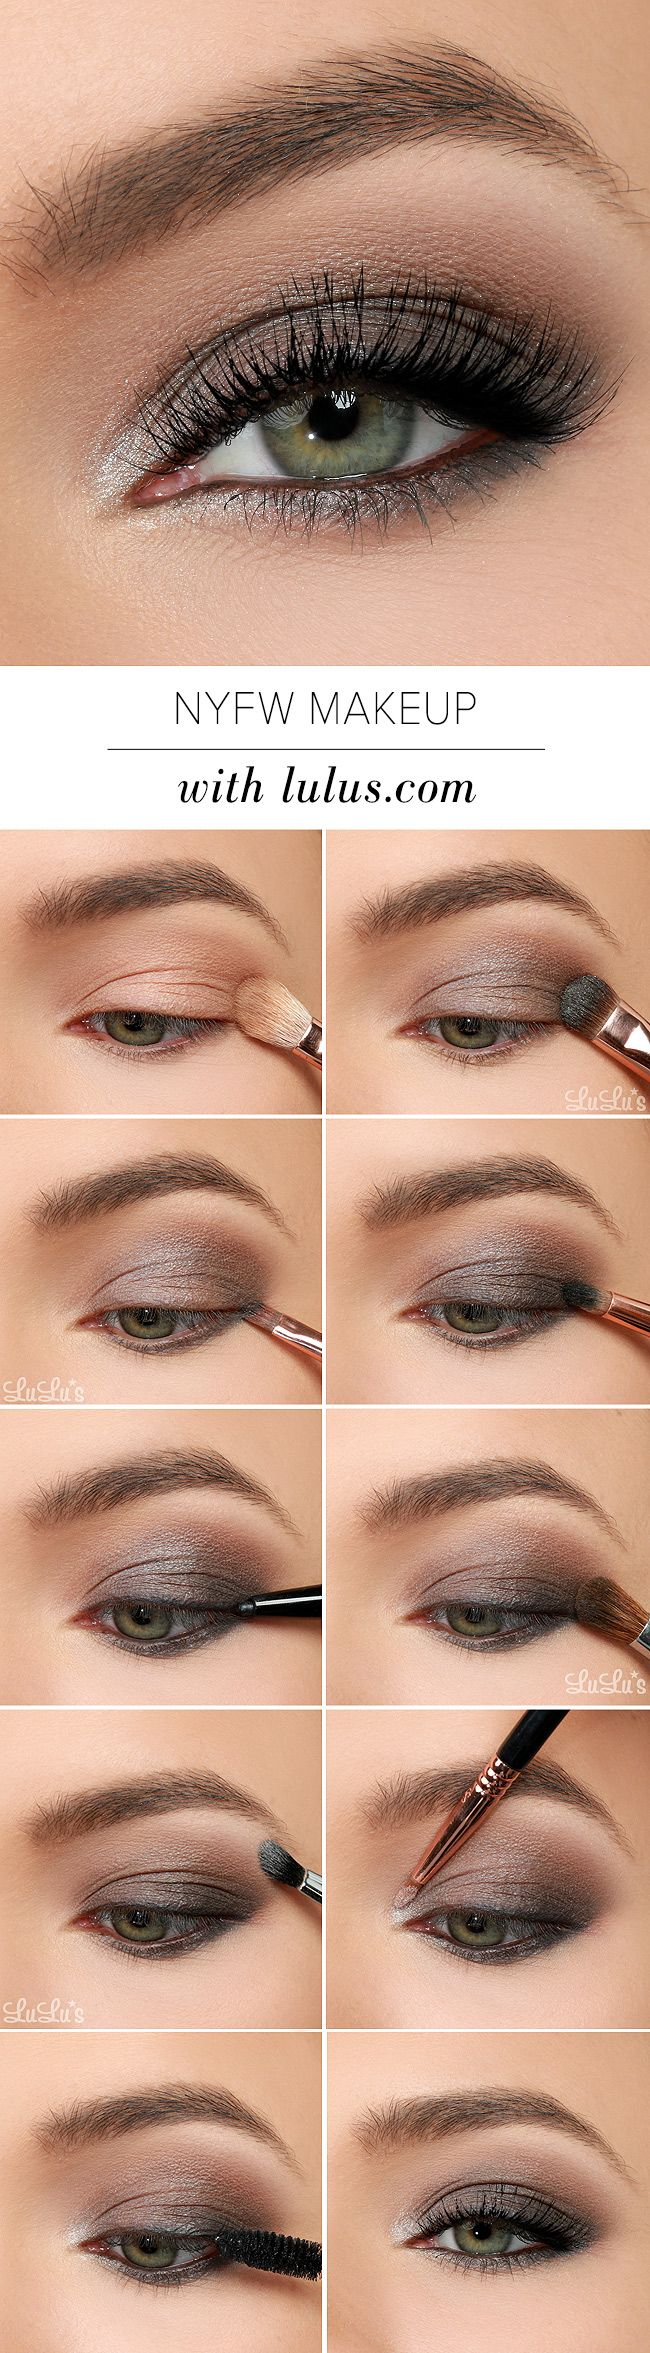 Lulu*s Howto: 2015 Nyfw Inspired Eye Shadow Tutorial